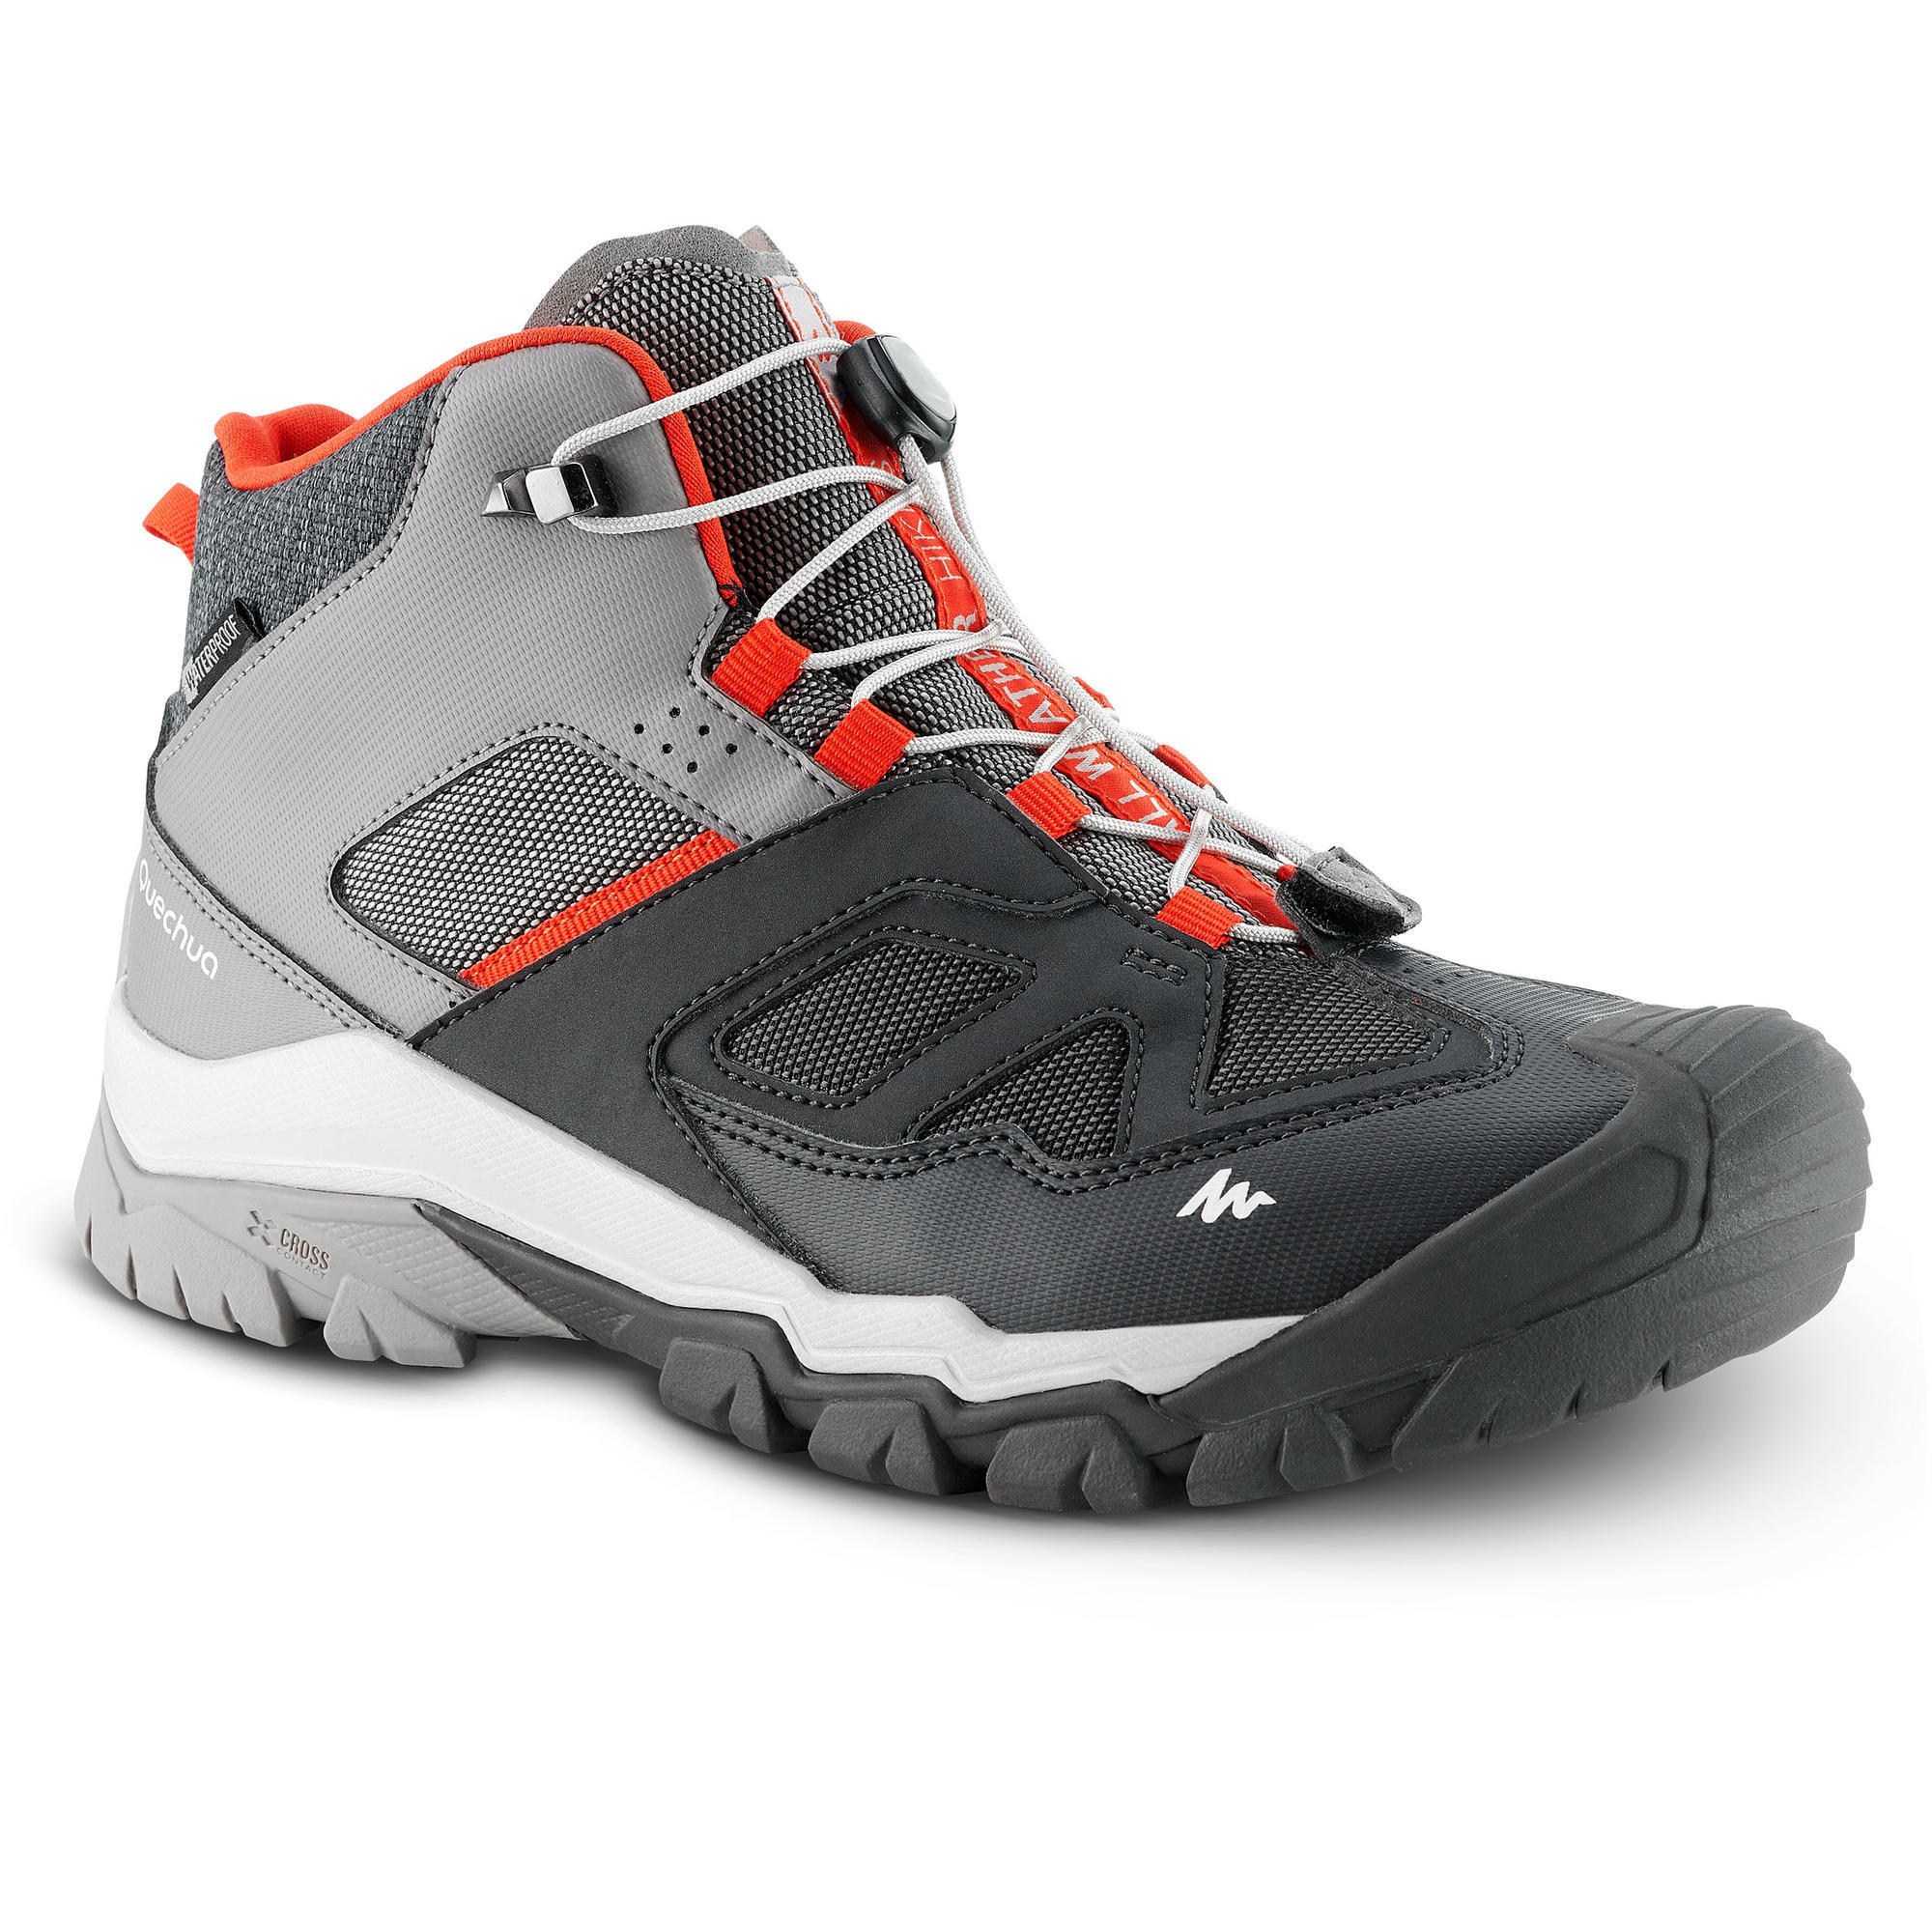 Kid's Waterproof Lace-up Hiking Shoes